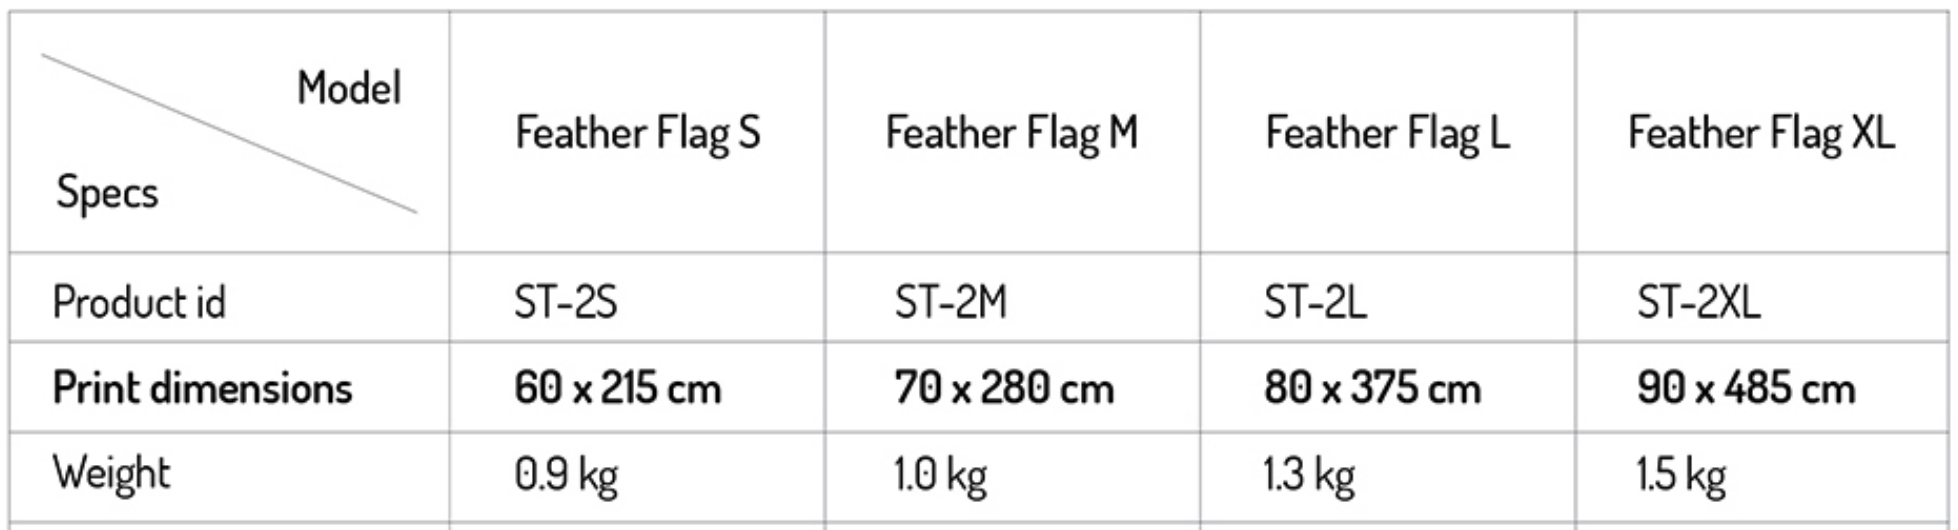 feather flag size